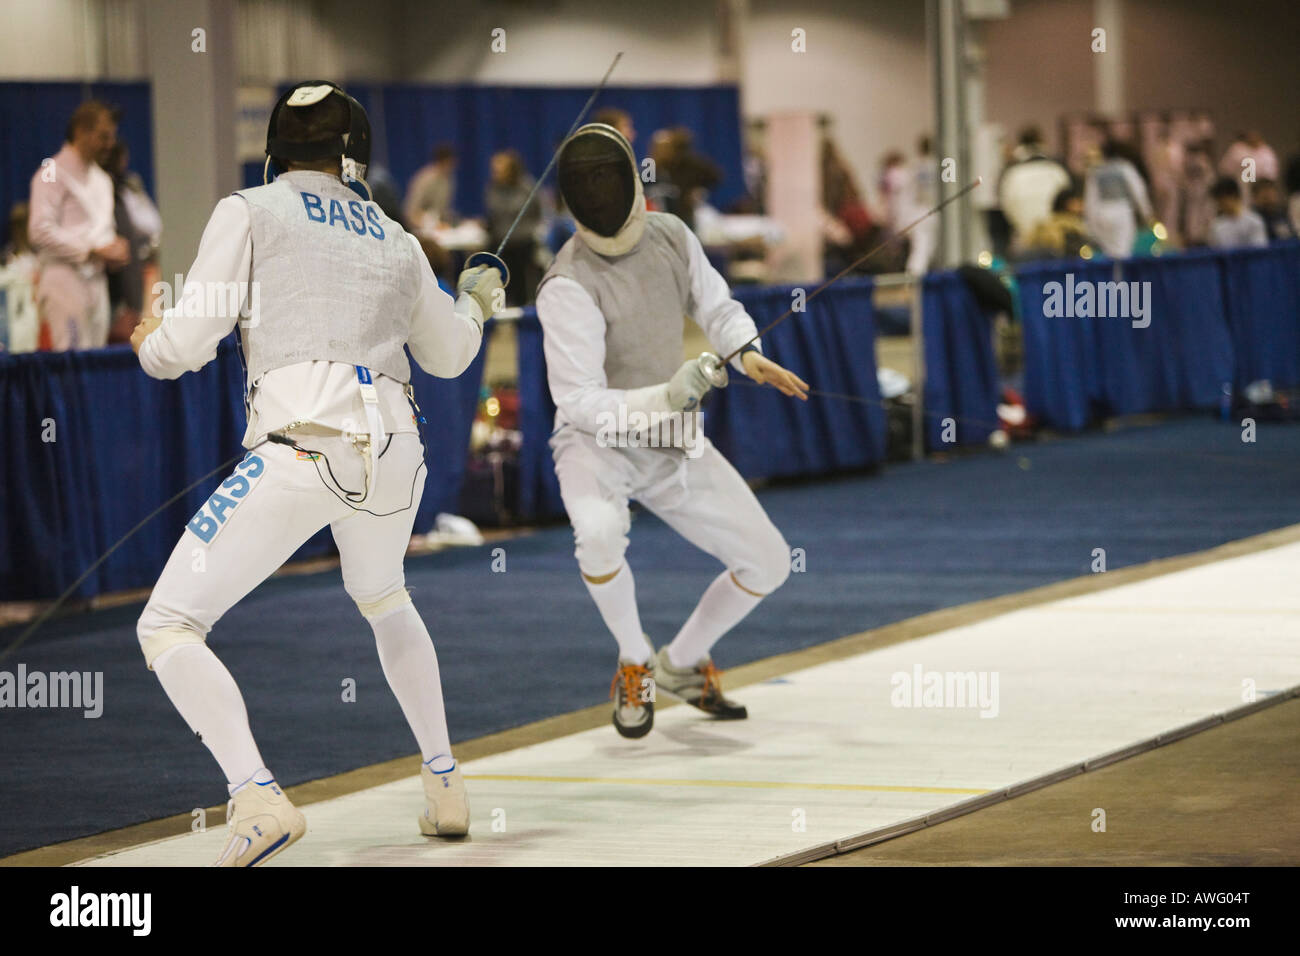 SPORTS Fencing competition bout male foil competitors on strip during match lunging toward opponent - Stock Image